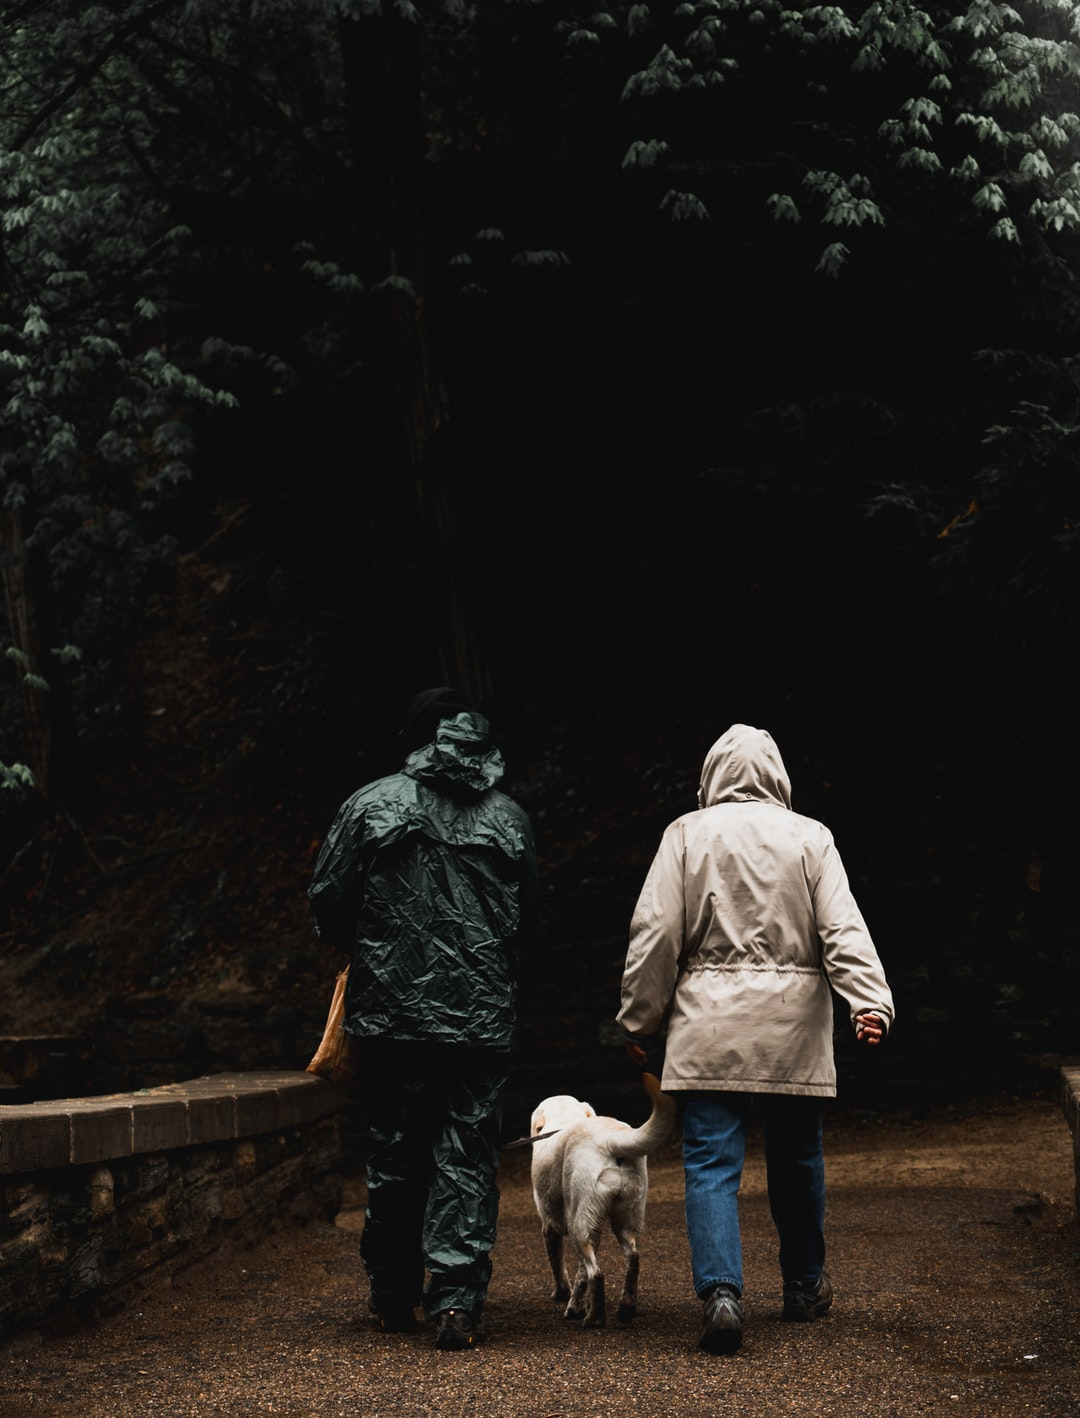 A couple walking their dog on a rainy day.